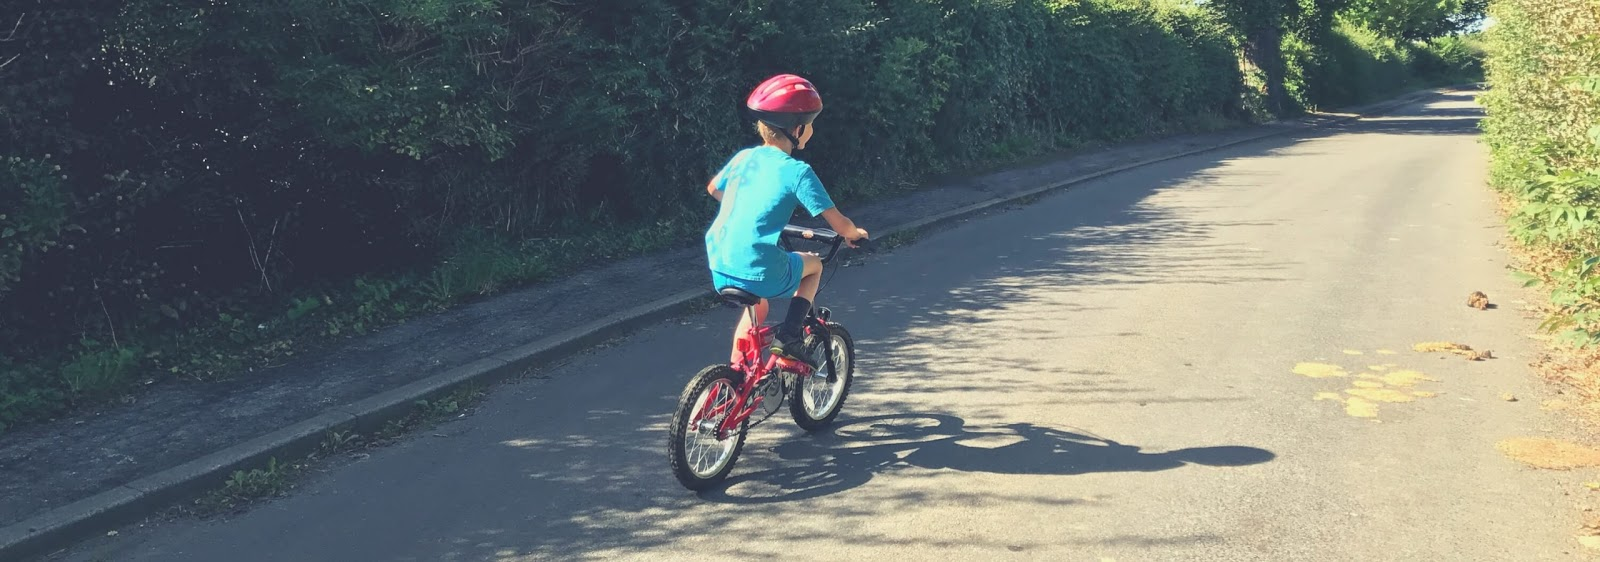 8 year old boy on a red bike riding on a road